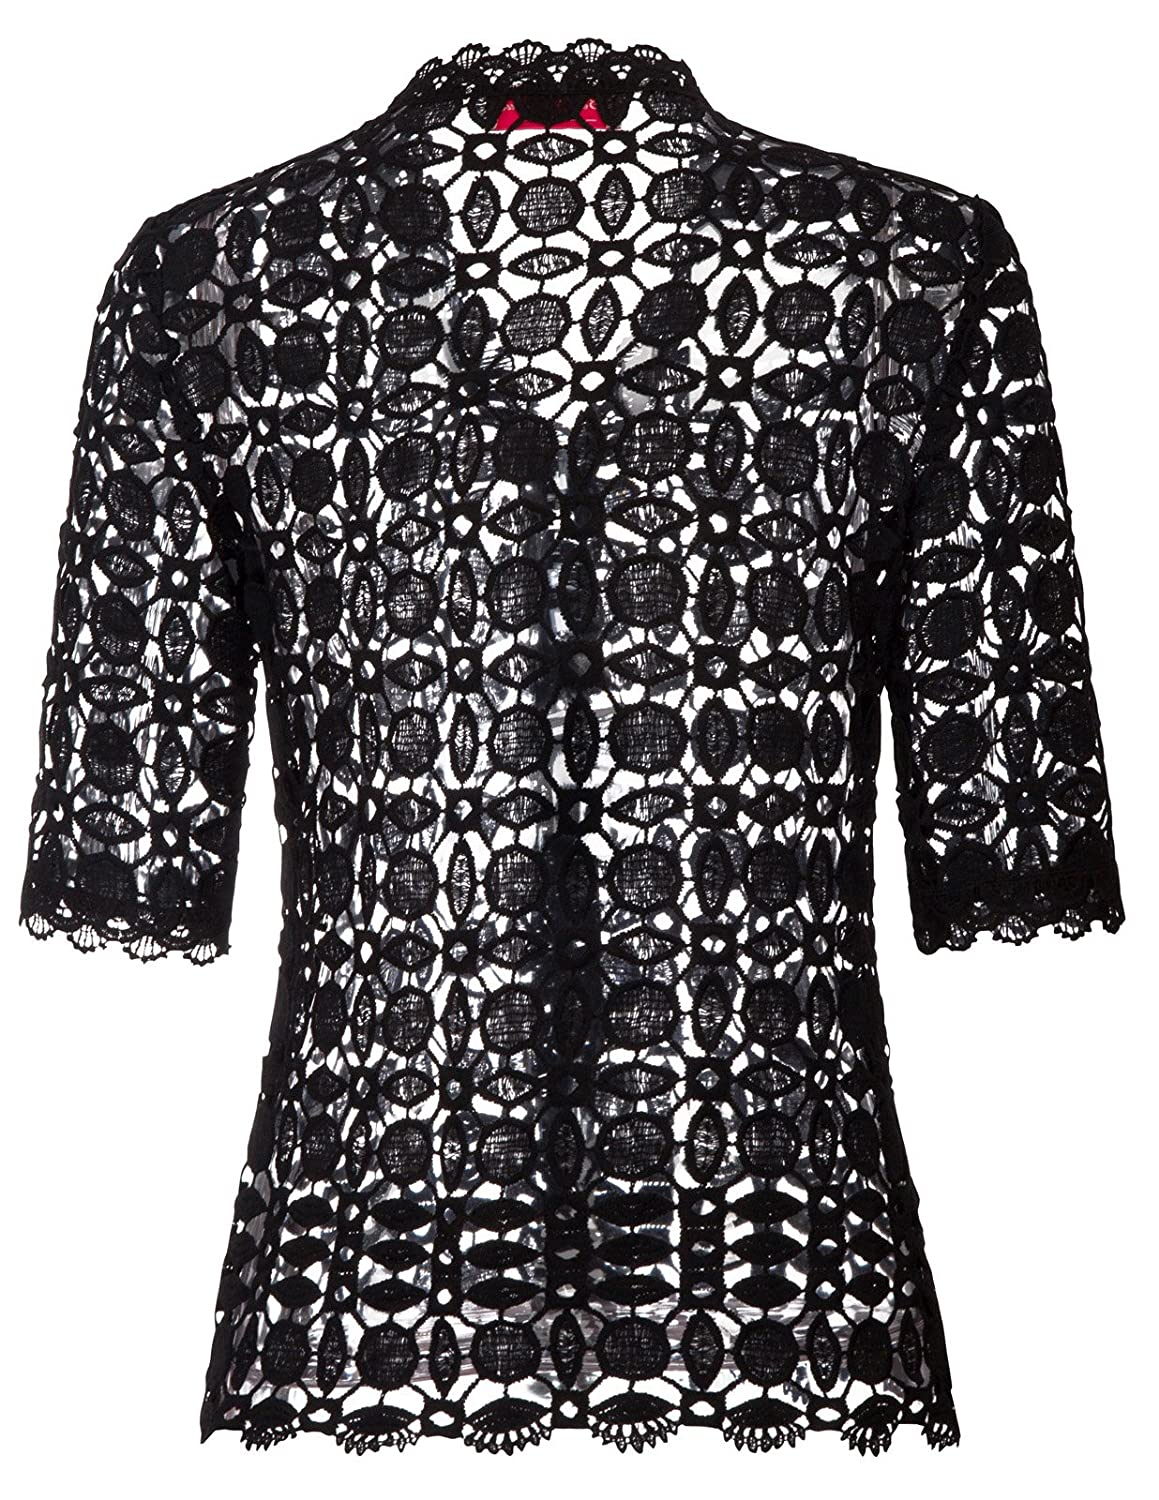 9c1ae9b9dac Belle Poque Women s Lace Shrug Cardigan Half Sleeve Open Front Crochet Bolero  Jacket at Amazon Women s Clothing store